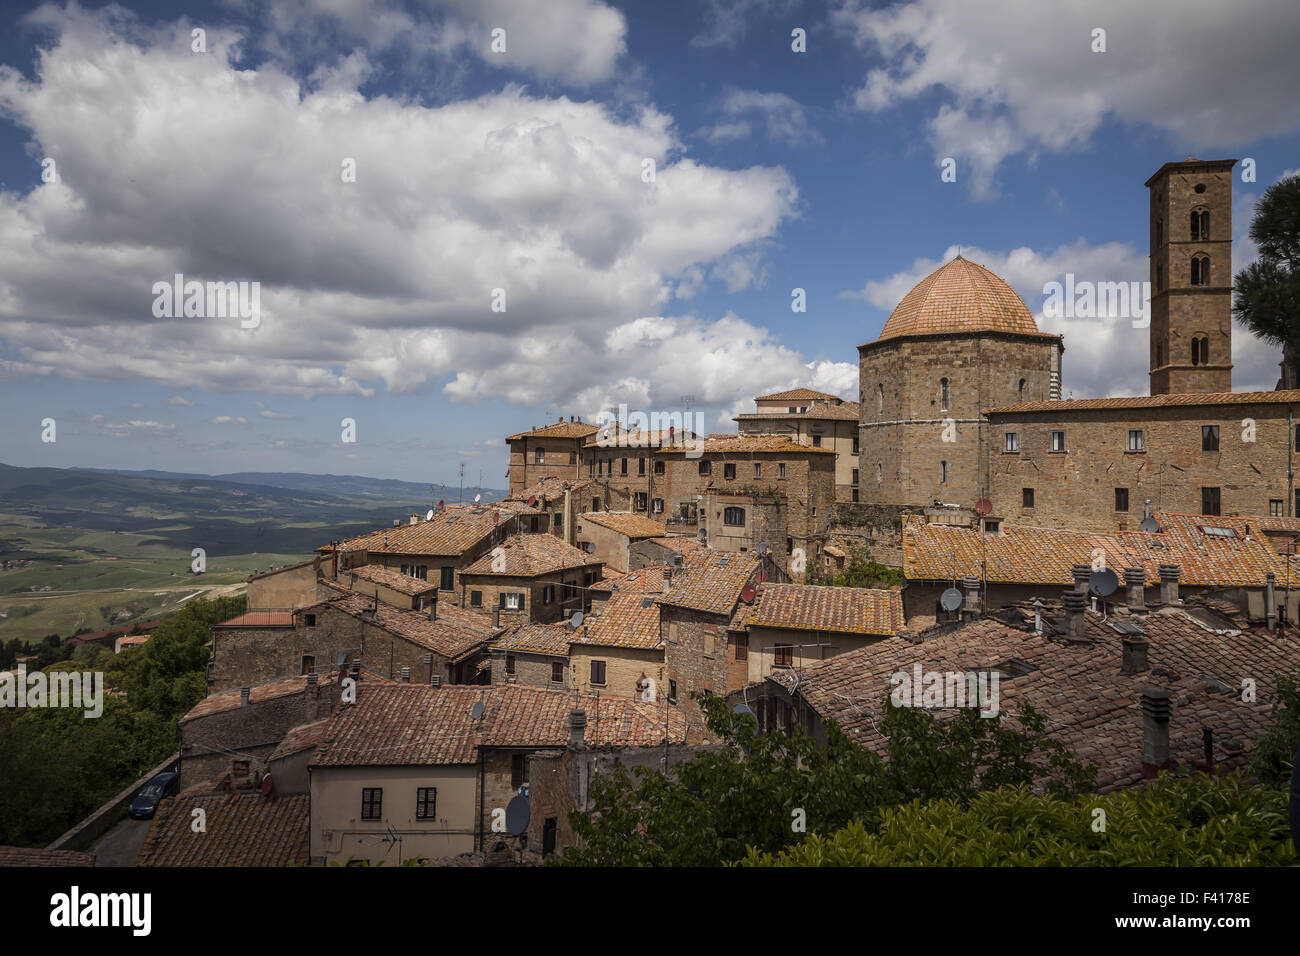 Volterra, Cathedral and tower, Tuscany, Italy - Stock Image